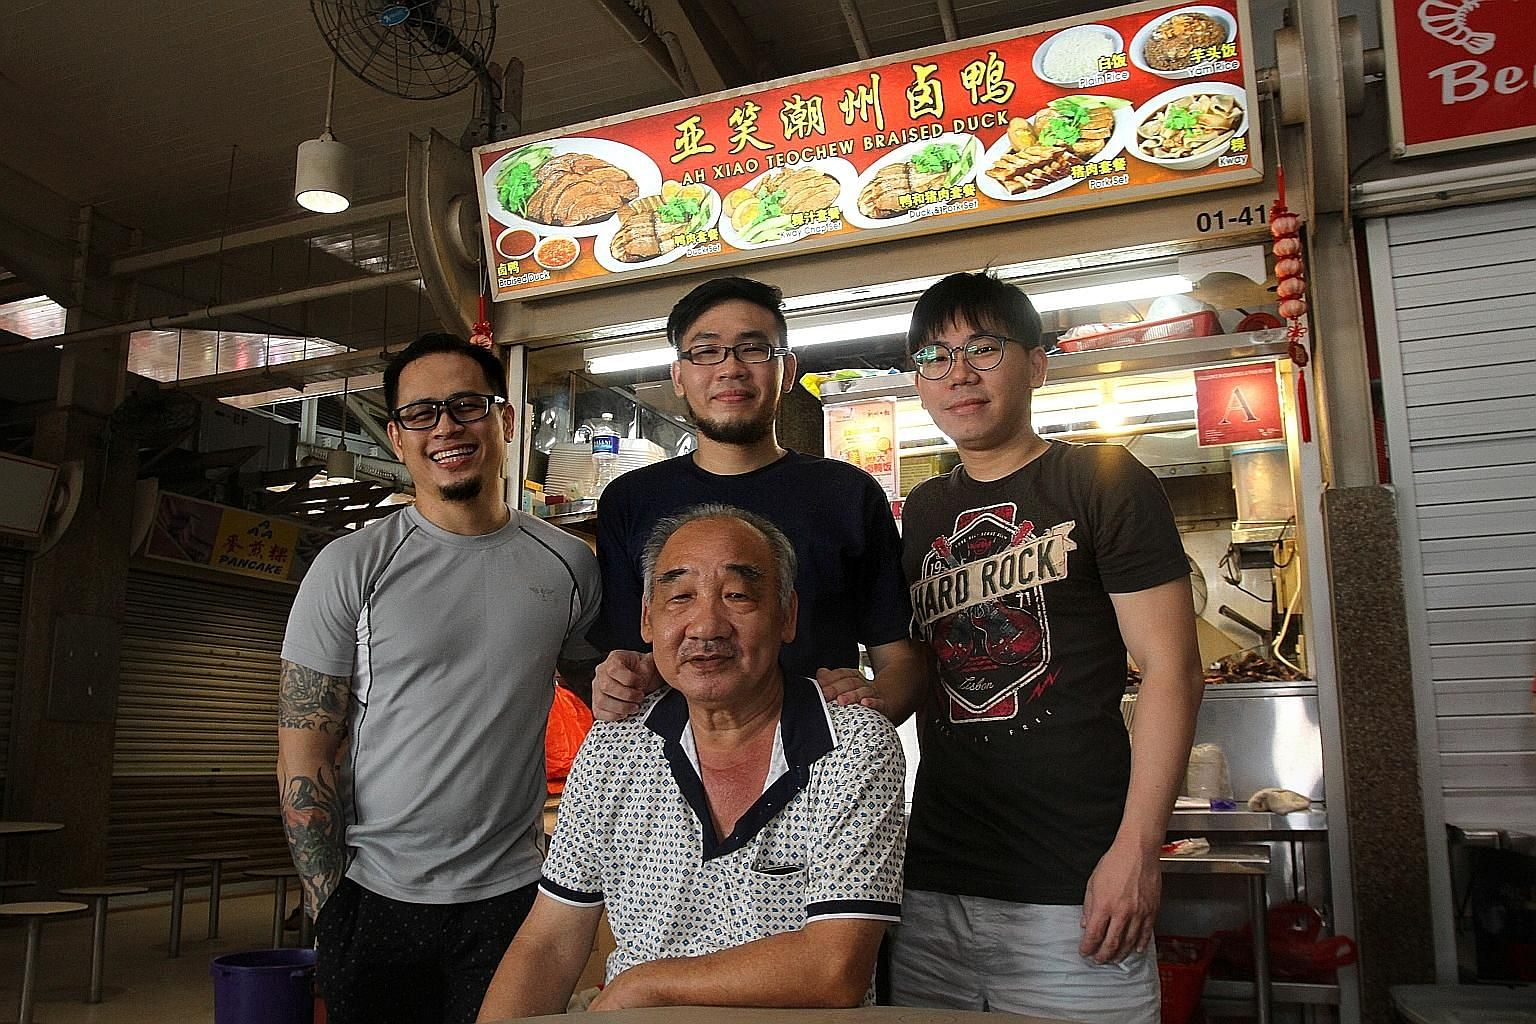 Braised duck stall owner Peh Thiam Teng, 65, who started his hawker business in 1987, is happy that his step-son, Mr Vince Chow, 38 (far left), and his two sons, Mr Kevan Peh (centre), 27, and Mr Peh Rui Hai, 30, are helping him full-time and plannin